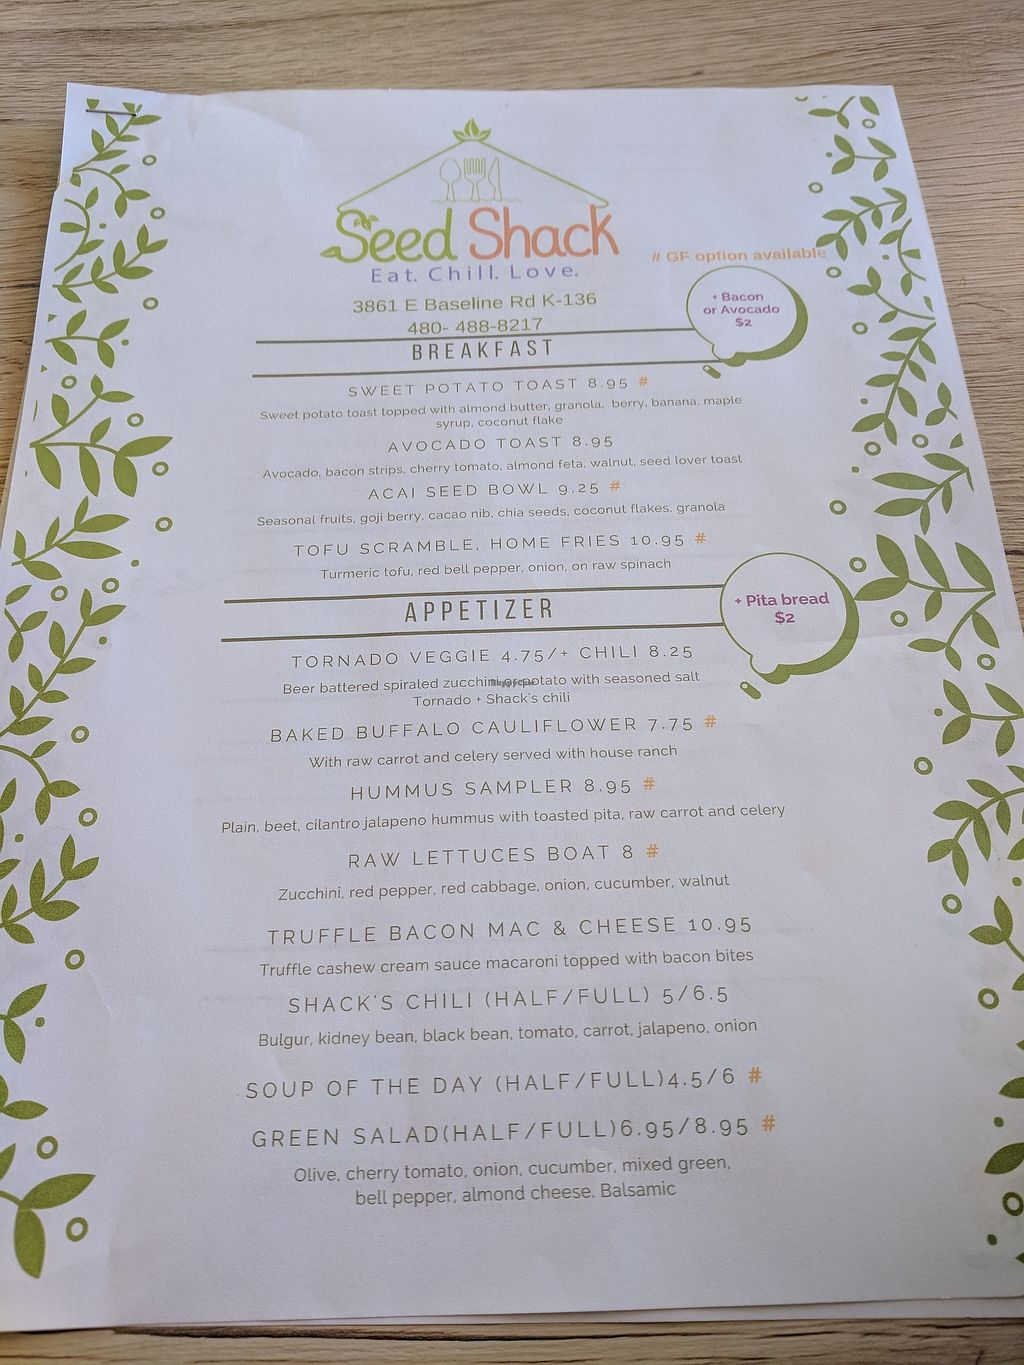 """Photo of Seed Shack  by <a href=""""/members/profile/lizsc24"""">lizsc24</a> <br/>Menu <br/> February 9, 2018  - <a href='/contact/abuse/image/104258/356613'>Report</a>"""